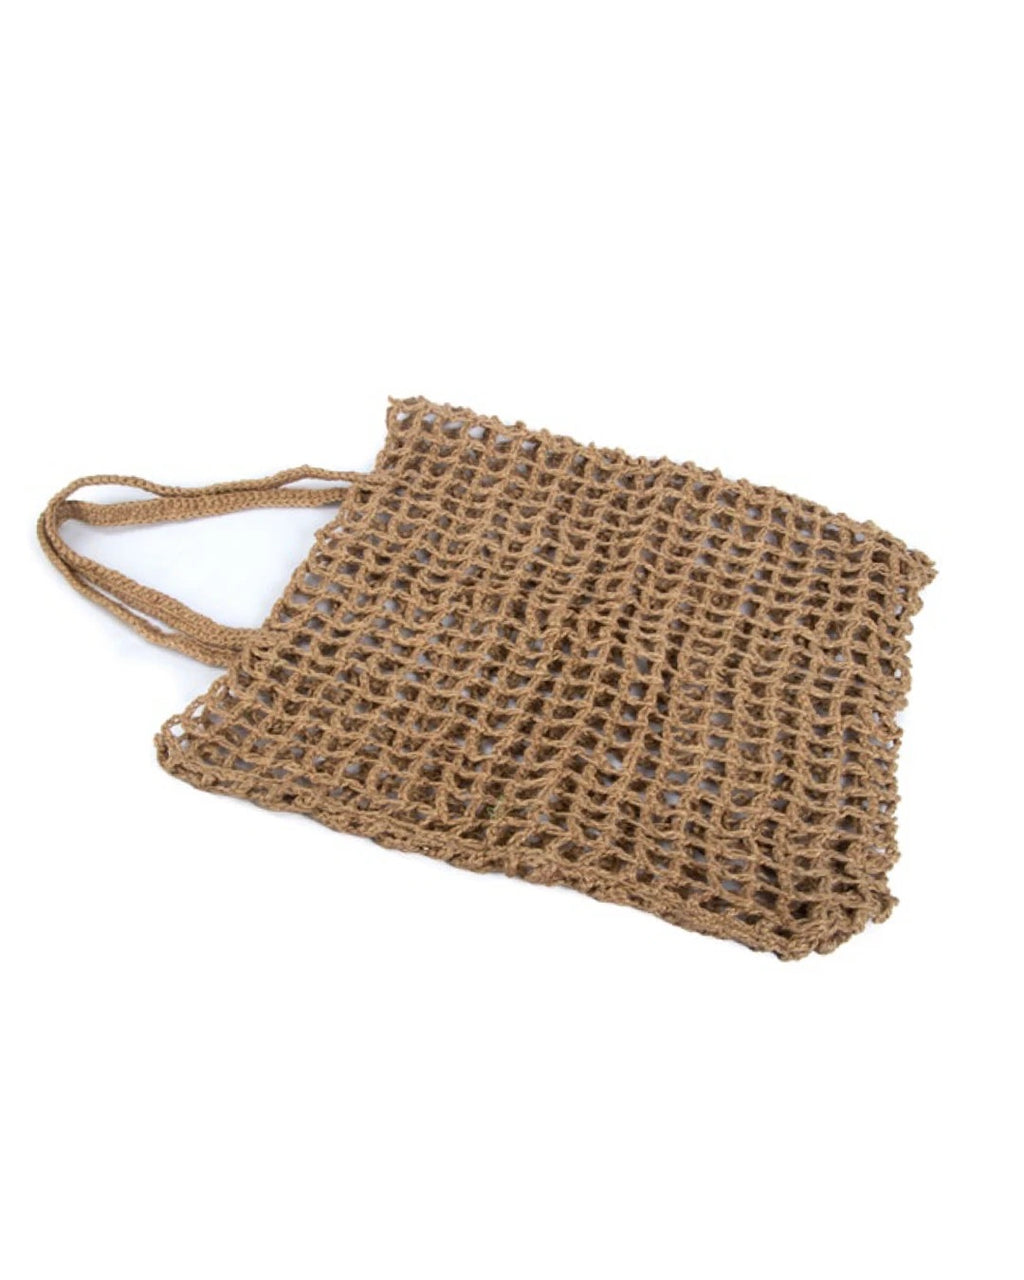 Macrame Jute shopping bag